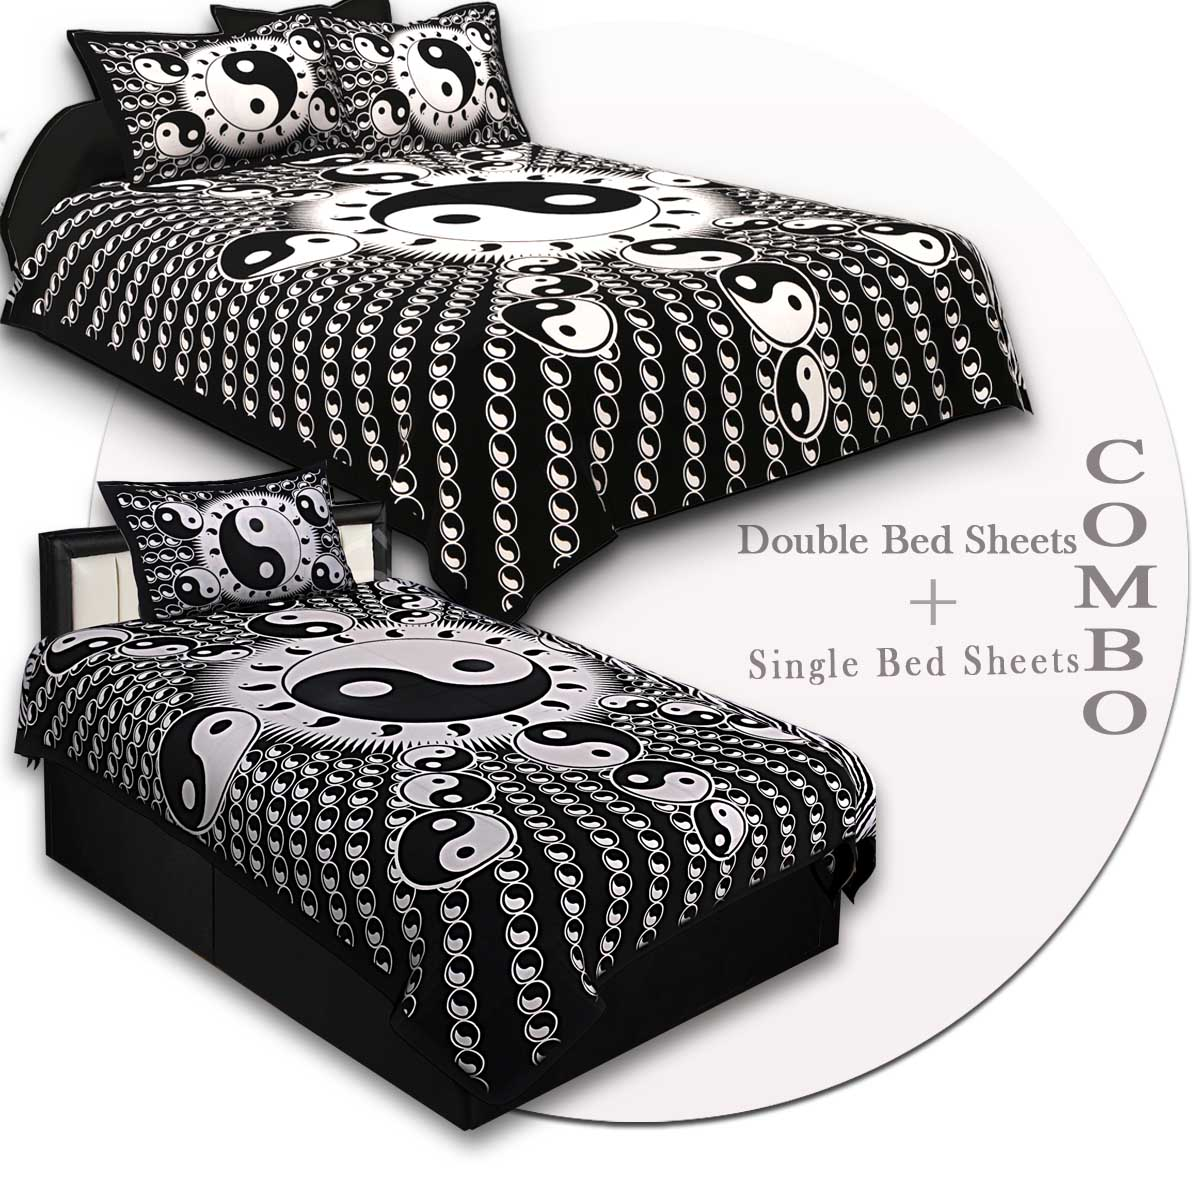 COMBO64- Set of 1 Double Bedsheet and  1 Single Bedsheet With  2+1 Pillow Cover